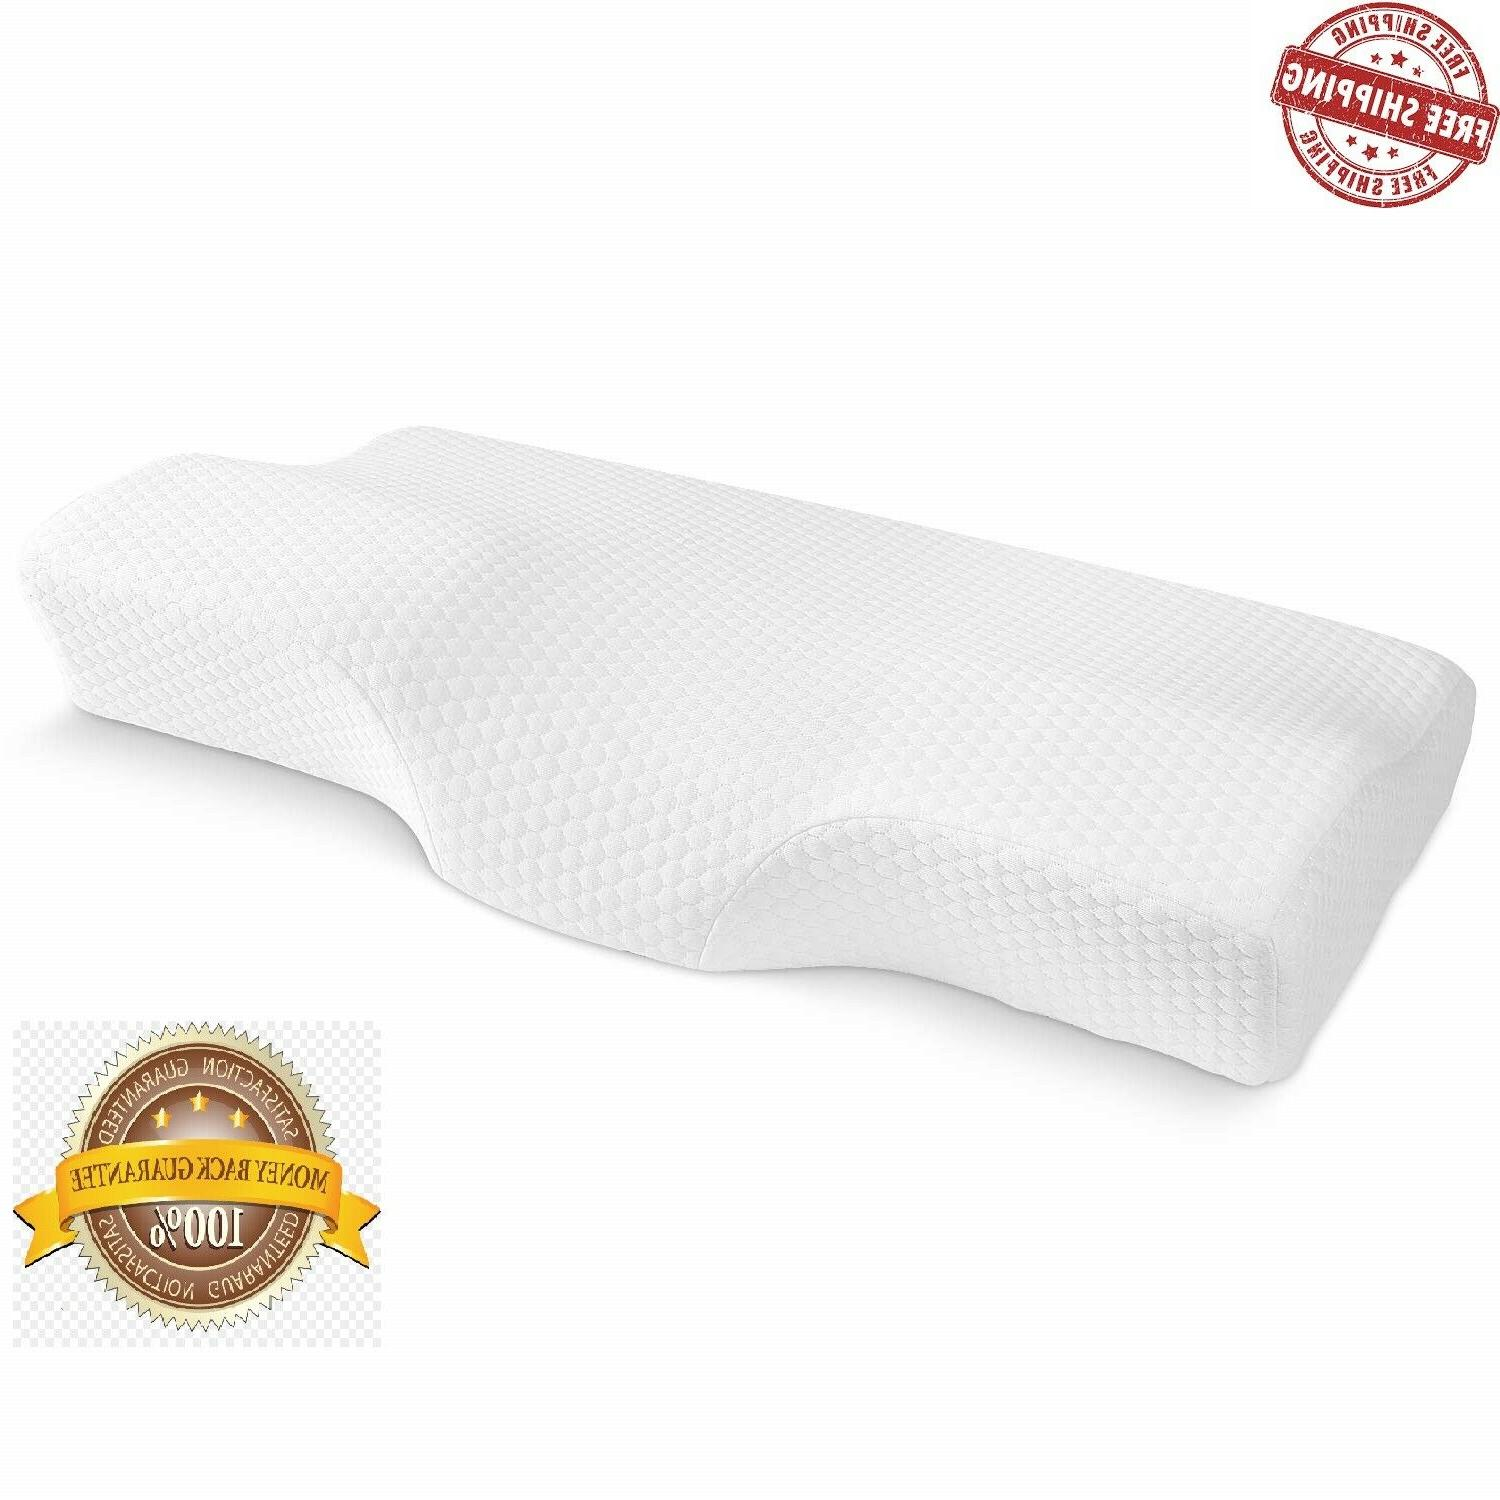 New Contour Memory Foam Orthopedic Pillow for Neck Pain Slee